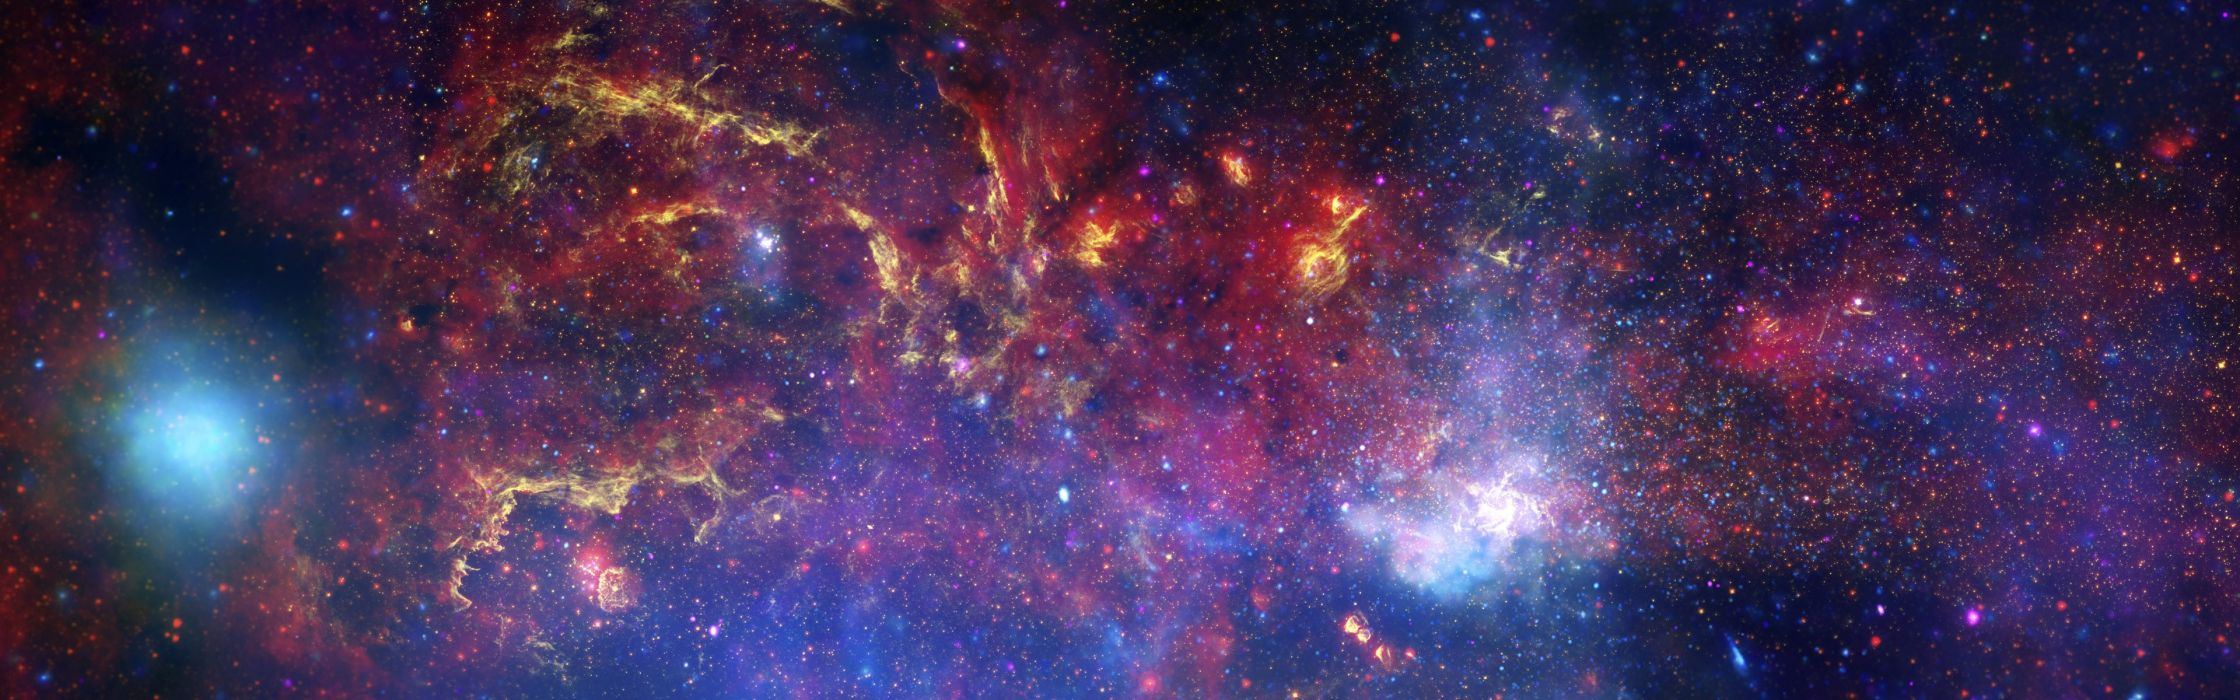 Outer space nebulae windows 8 microsoft windows nighttime wallpaper